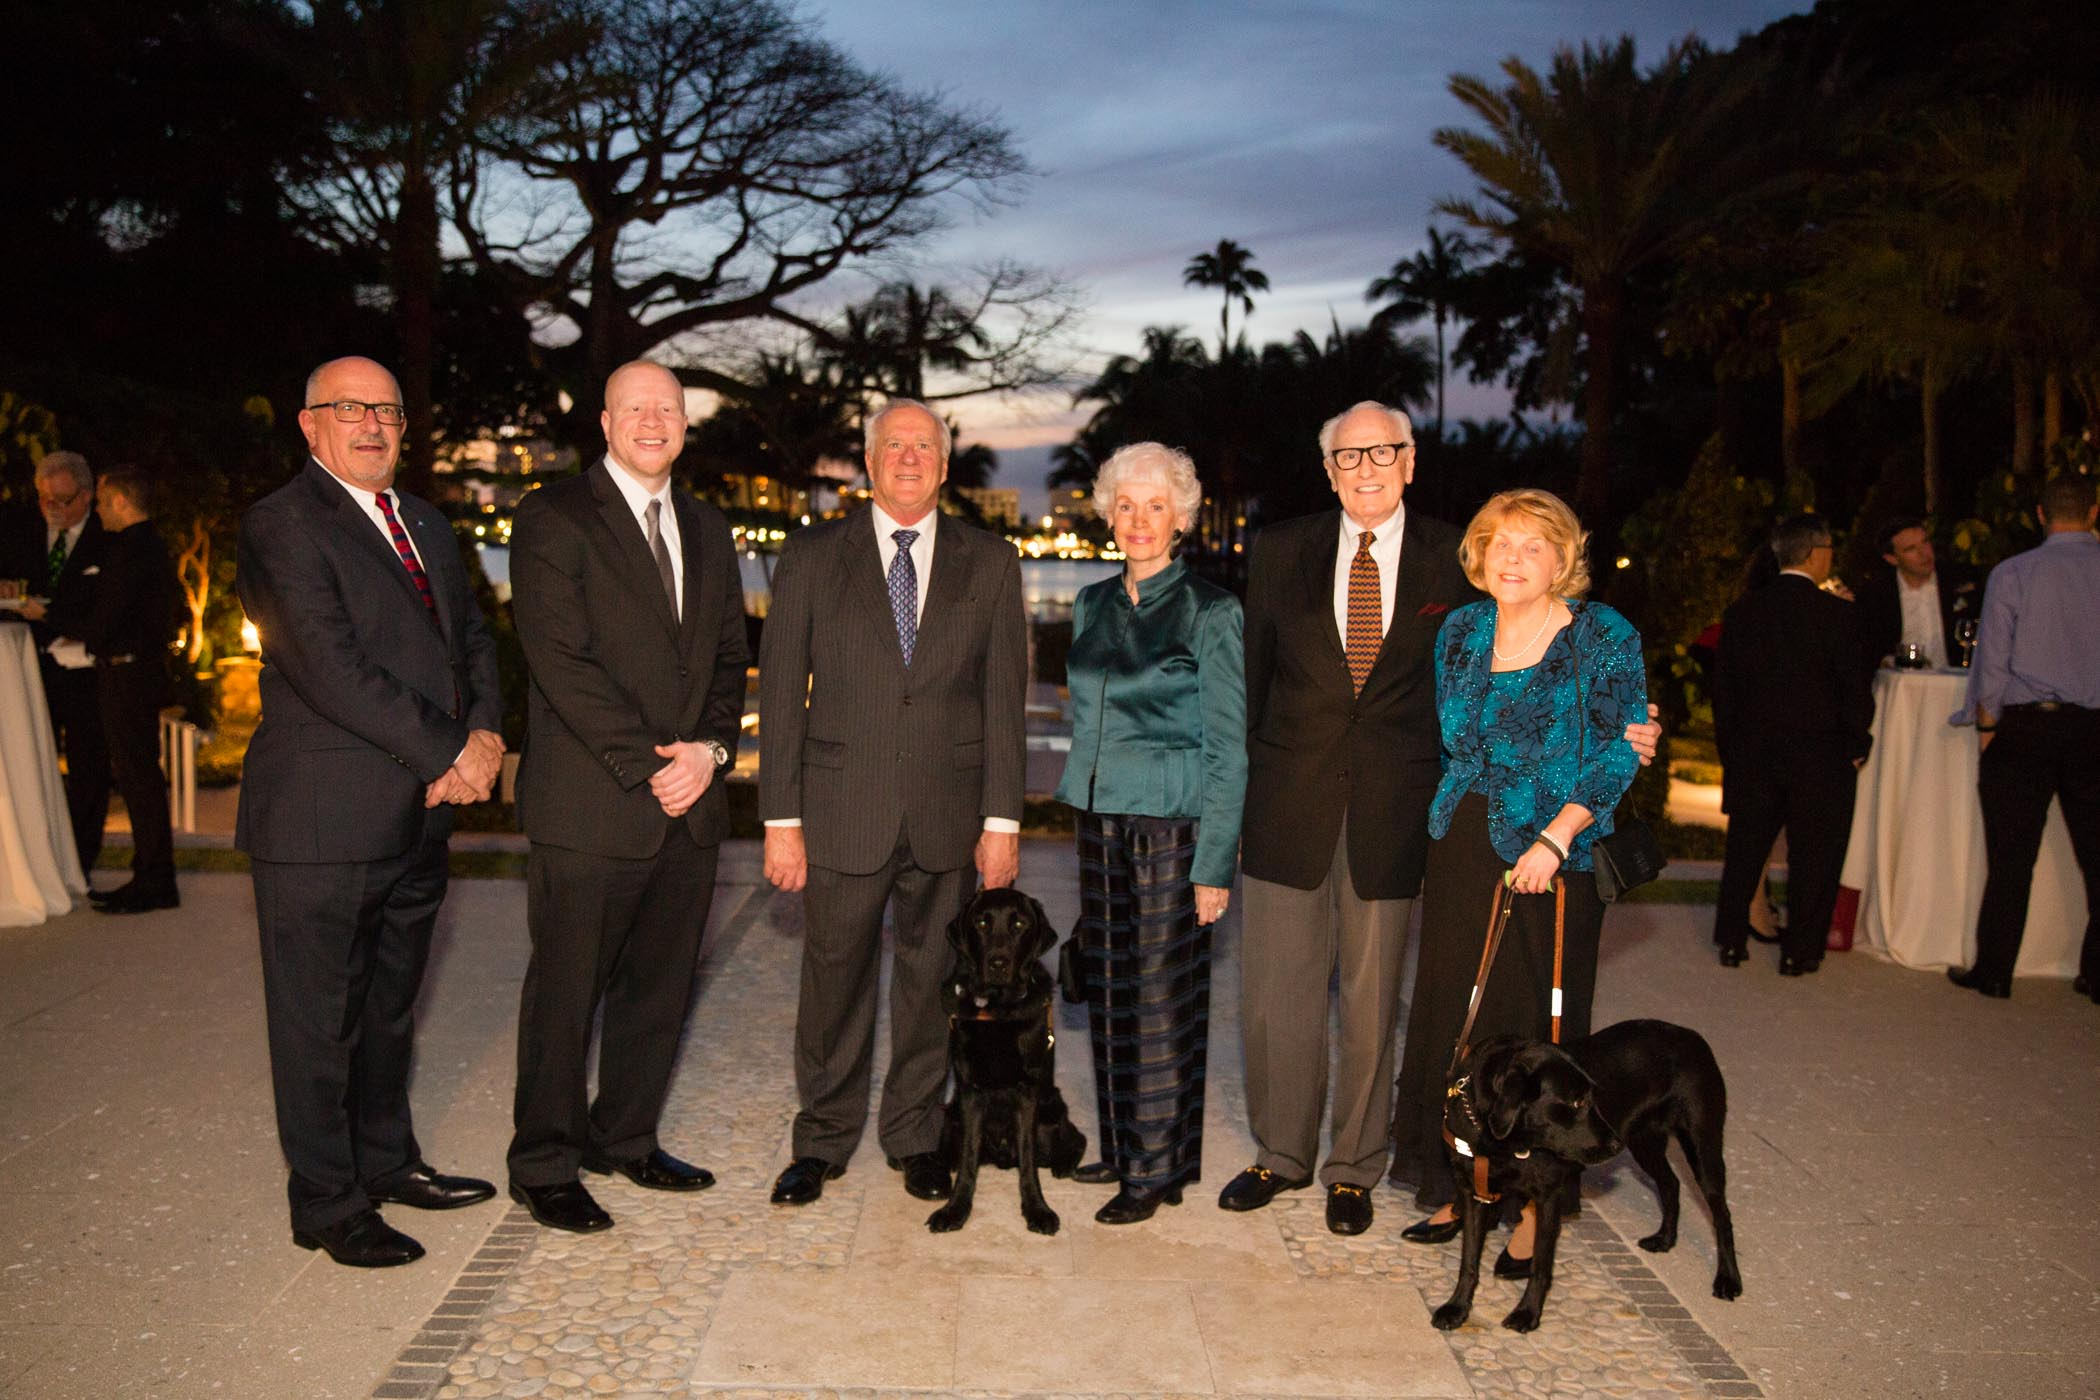 Several Lighthouse board members pose for a picture at an evening event with two dog guides.